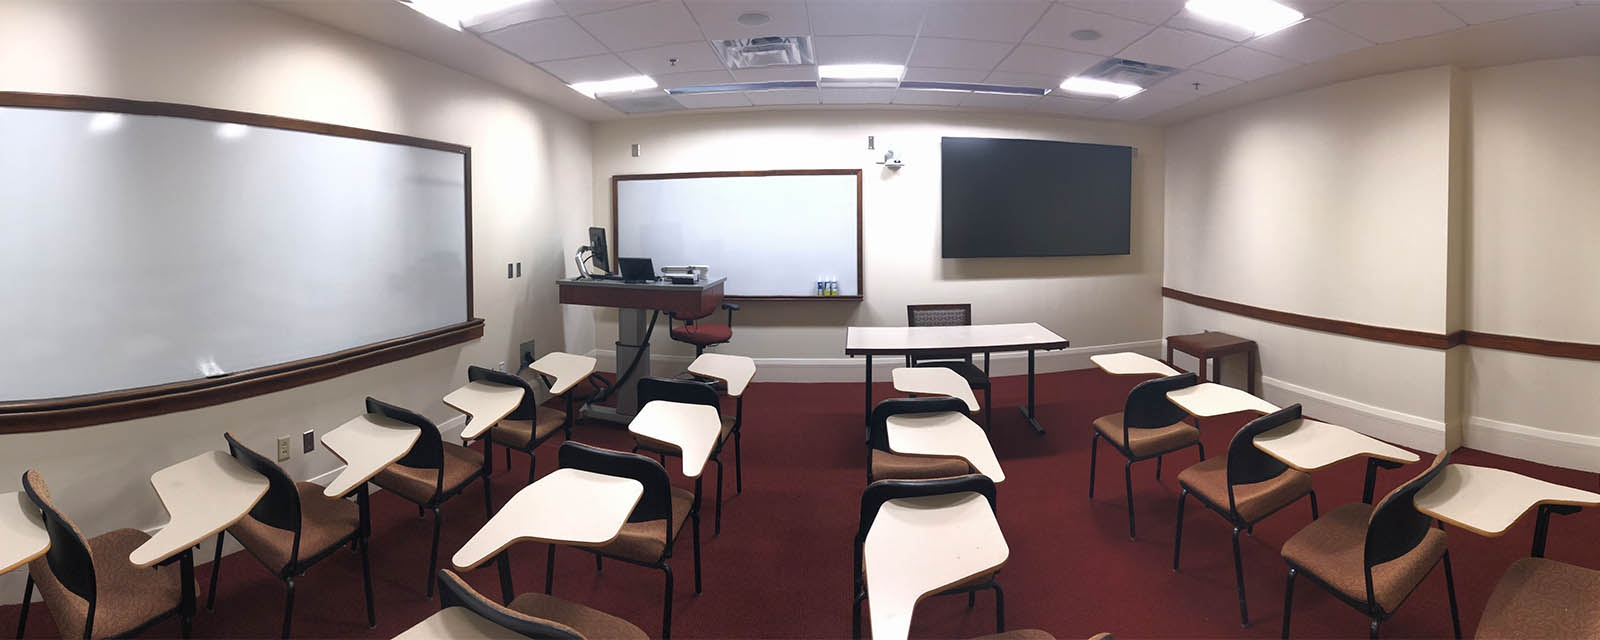 Panorama of Tolley 115 from the rear of the room to the front. The chairs are movable and in rows. The teaching station is fixed and located in the audience's front left of the room.